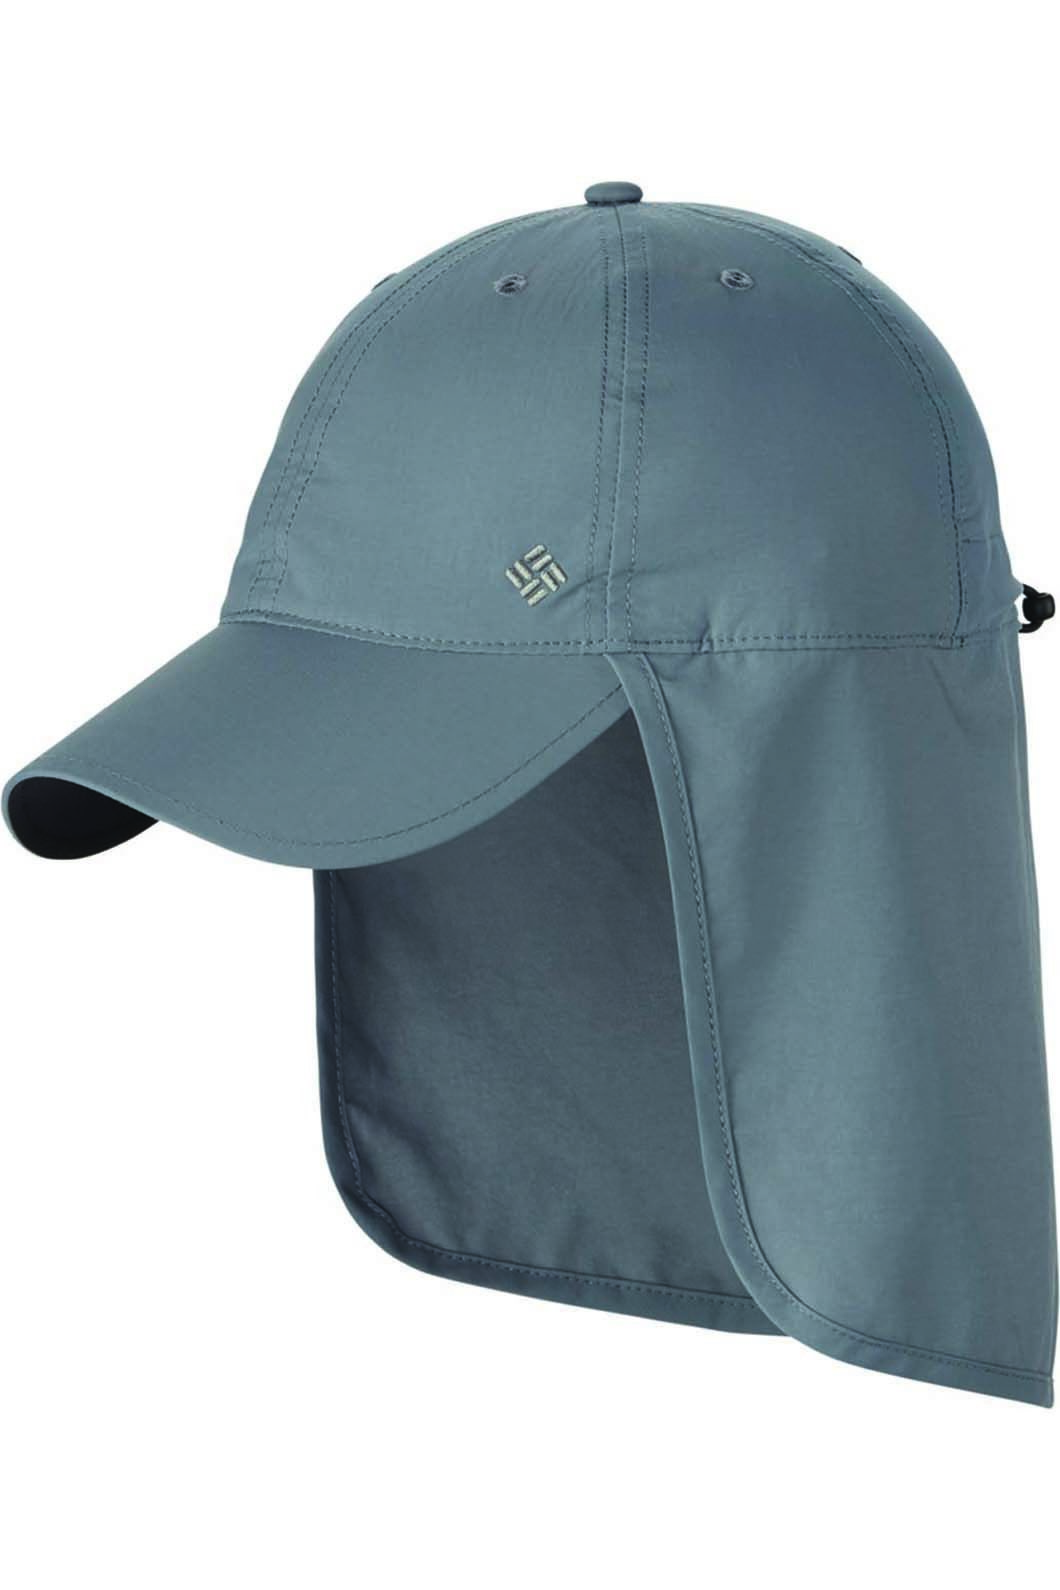 Columbia Unisex Cachalot III Hat Ash One Size Fits Most, Fossil, hi-res